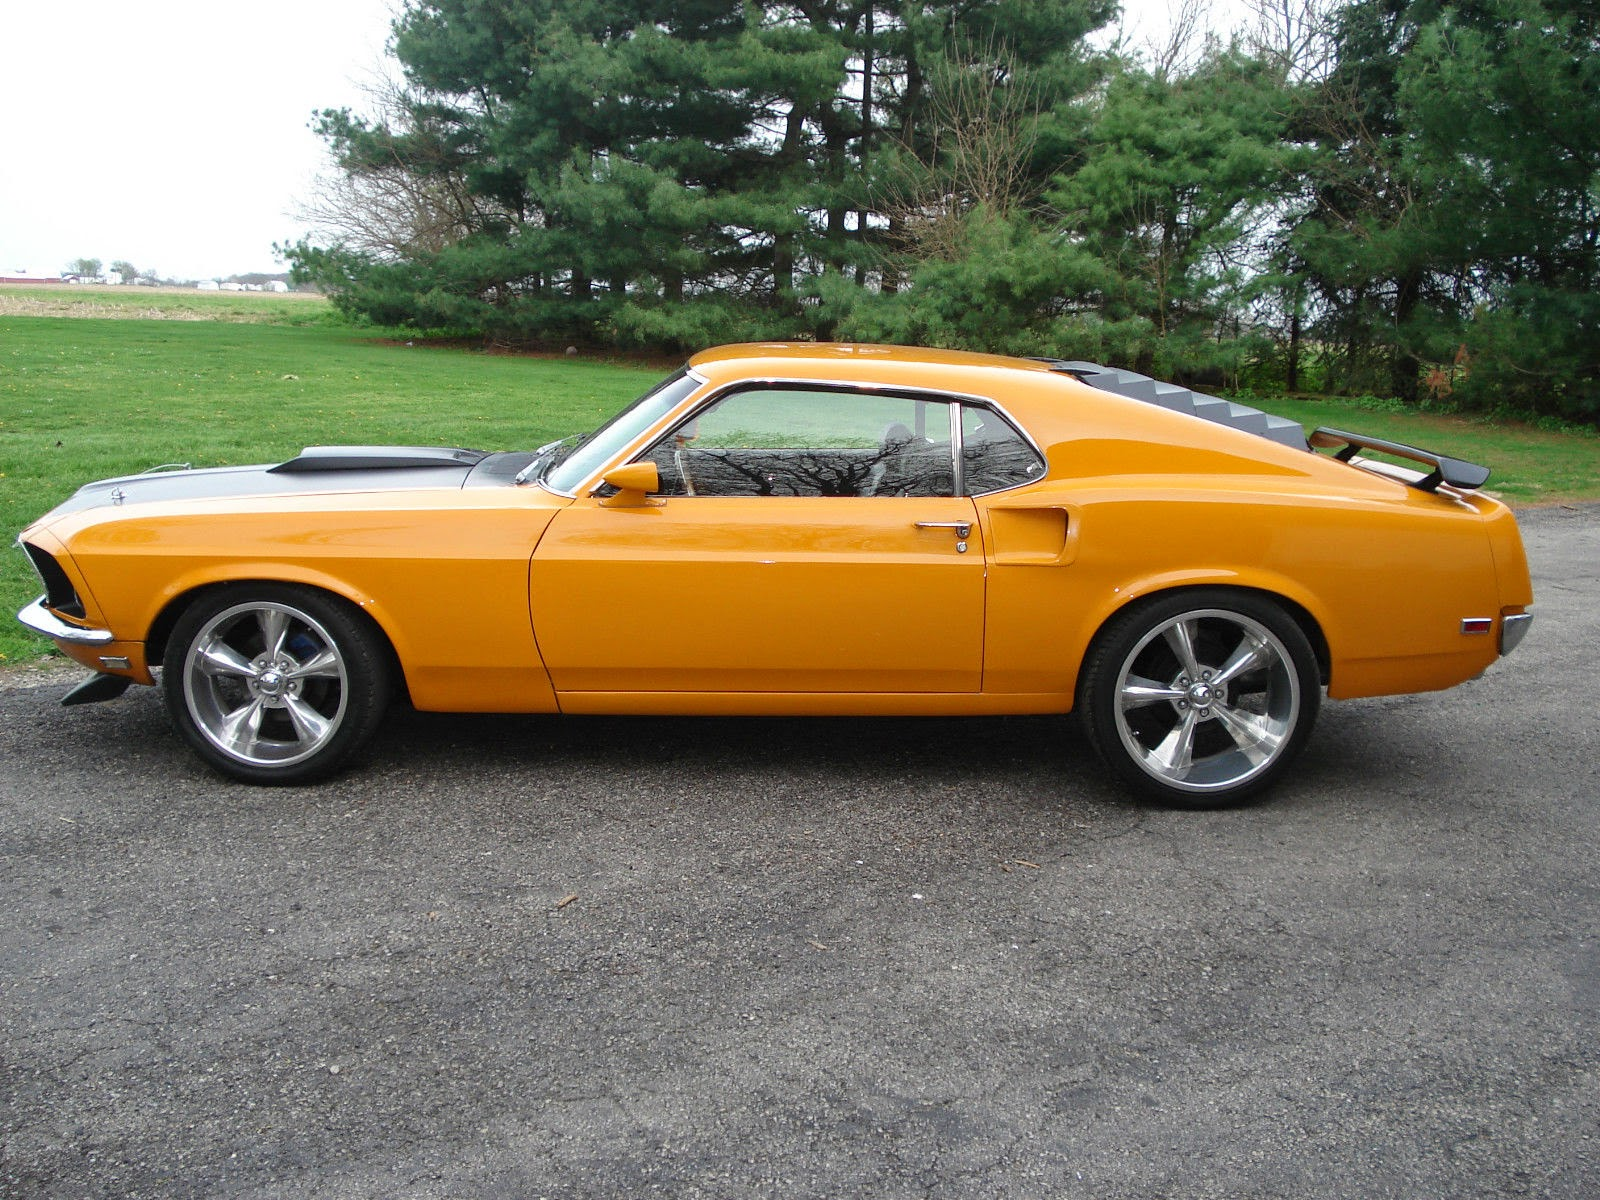 1969 ford mustang fastback 351 cobra jet grabber orange for sale american muscle cars. Black Bedroom Furniture Sets. Home Design Ideas